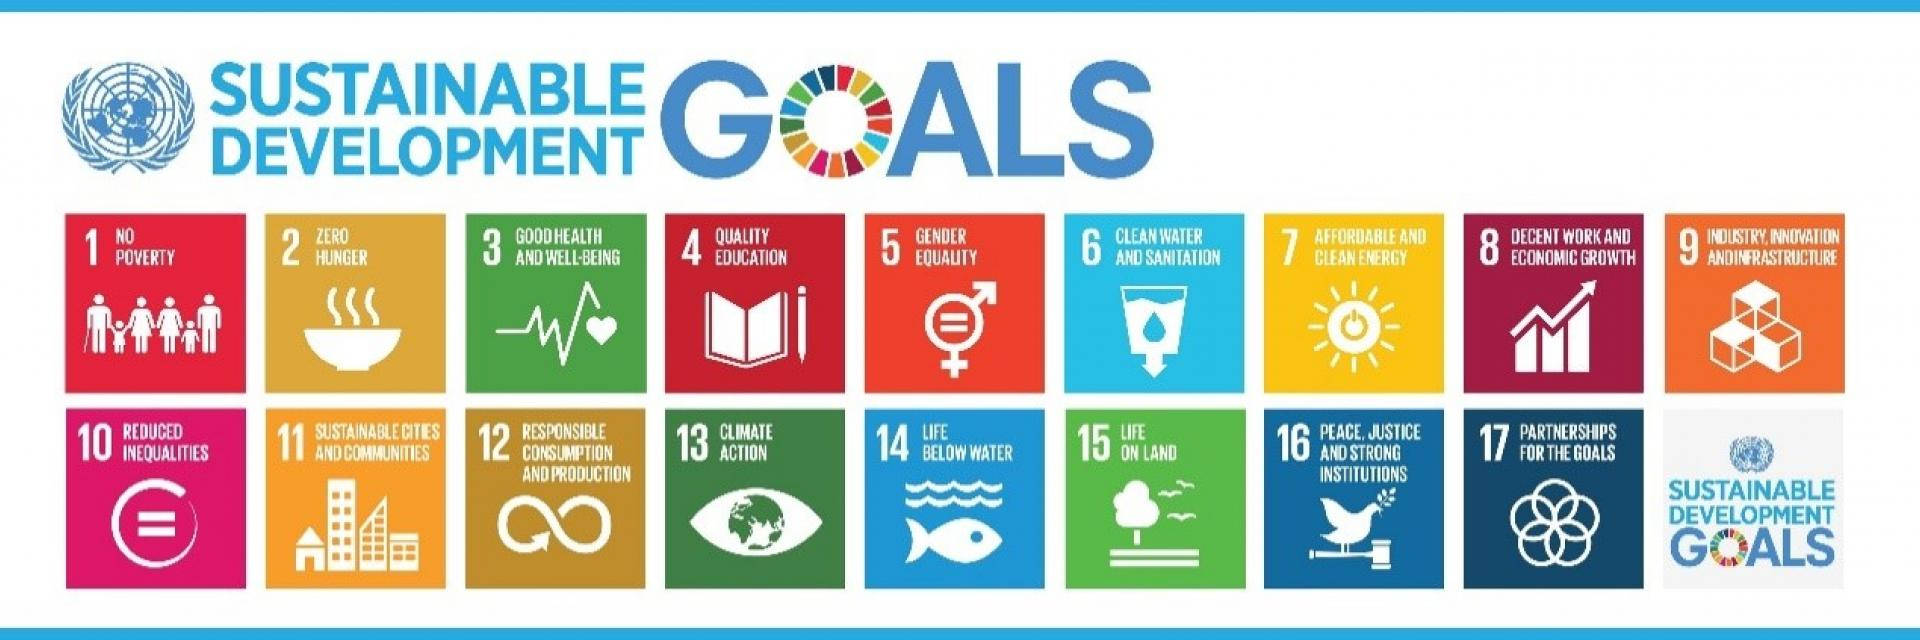 Sutainable development goals United Nations